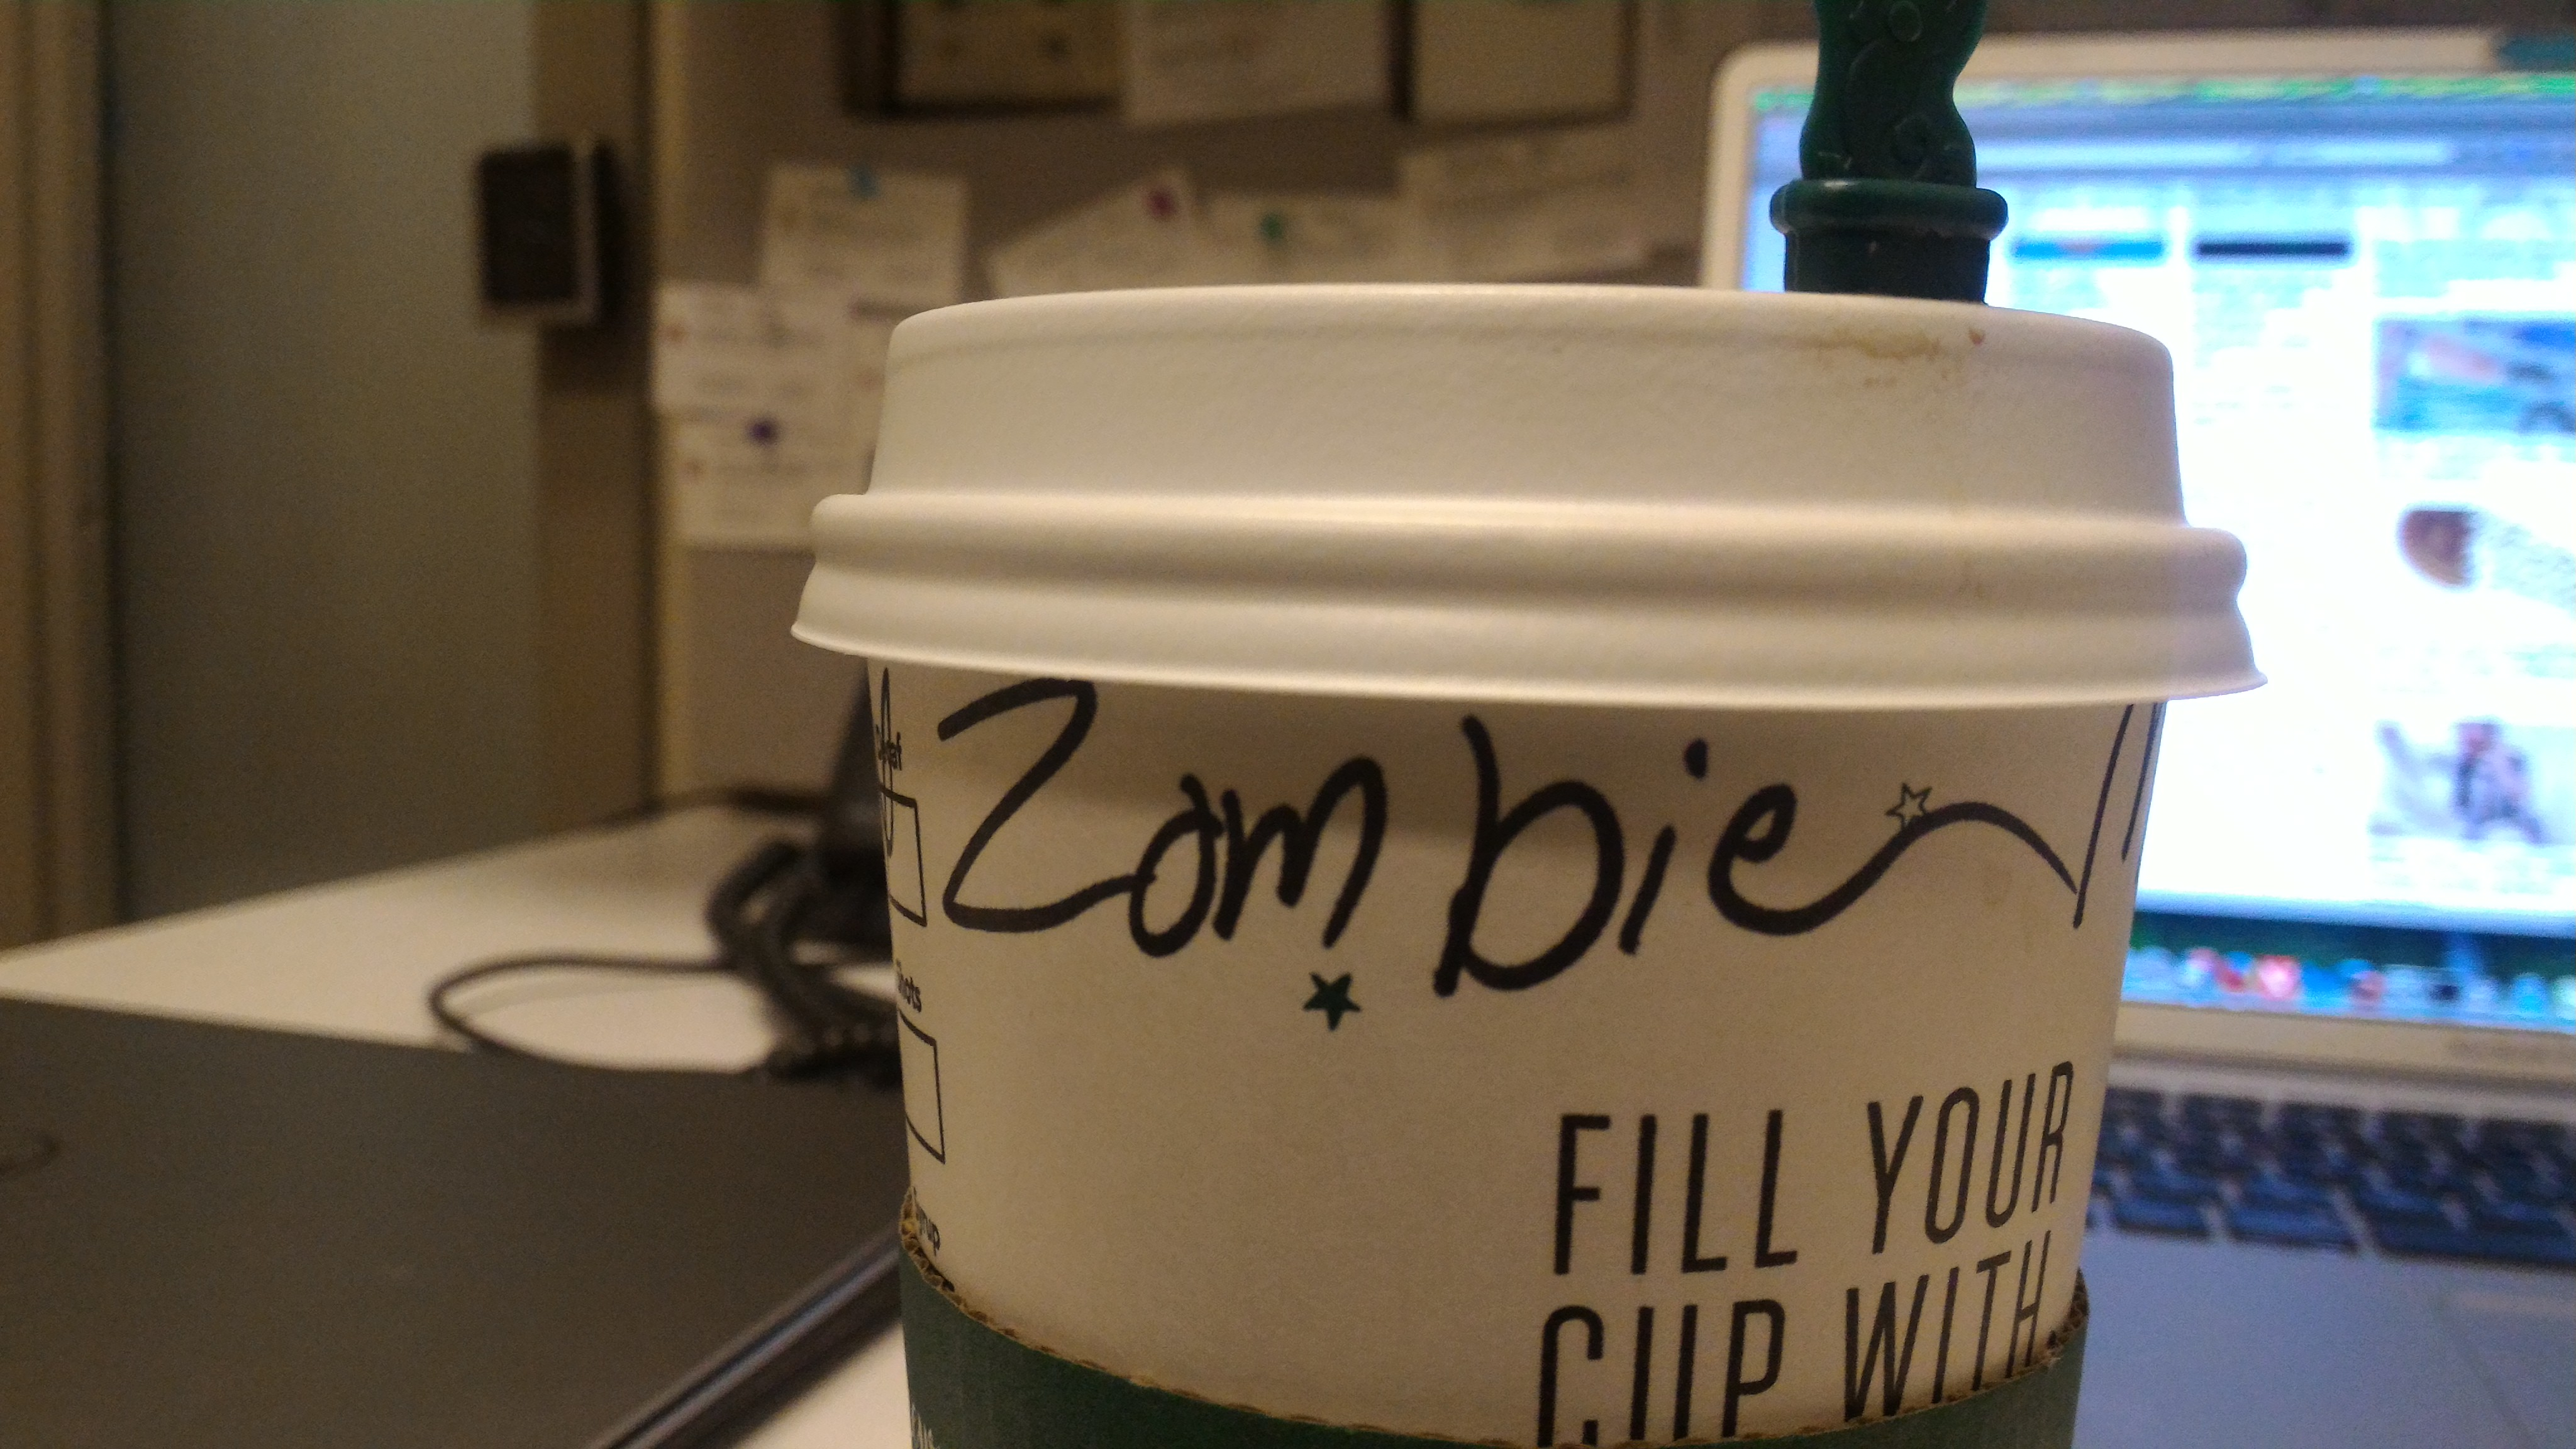 Zombie from Starbucks